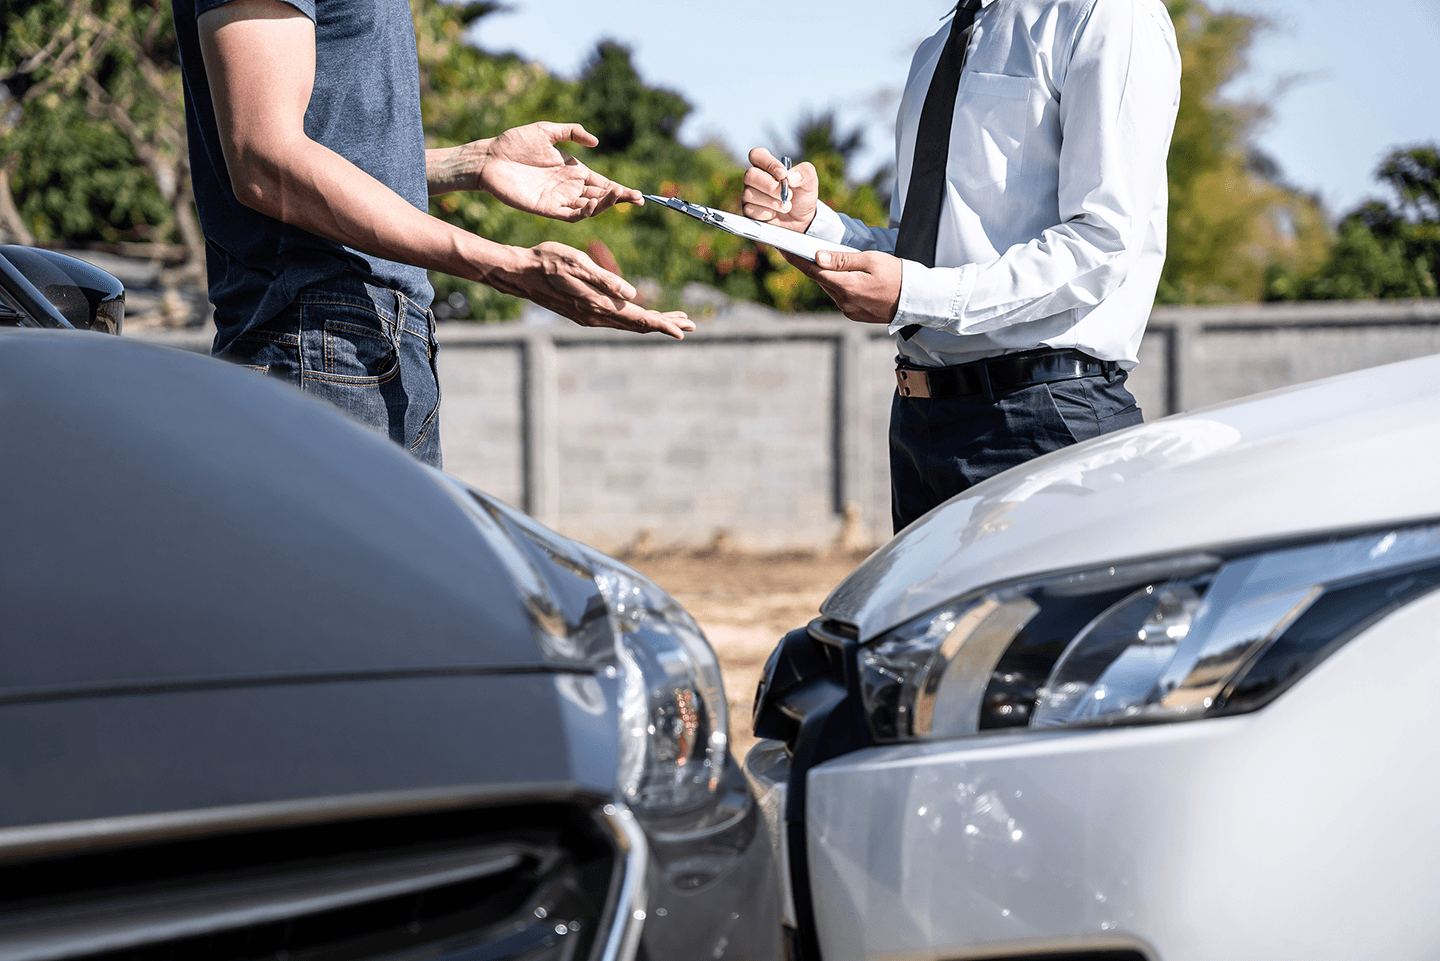 Car Accidents and Your Rights: Part 2